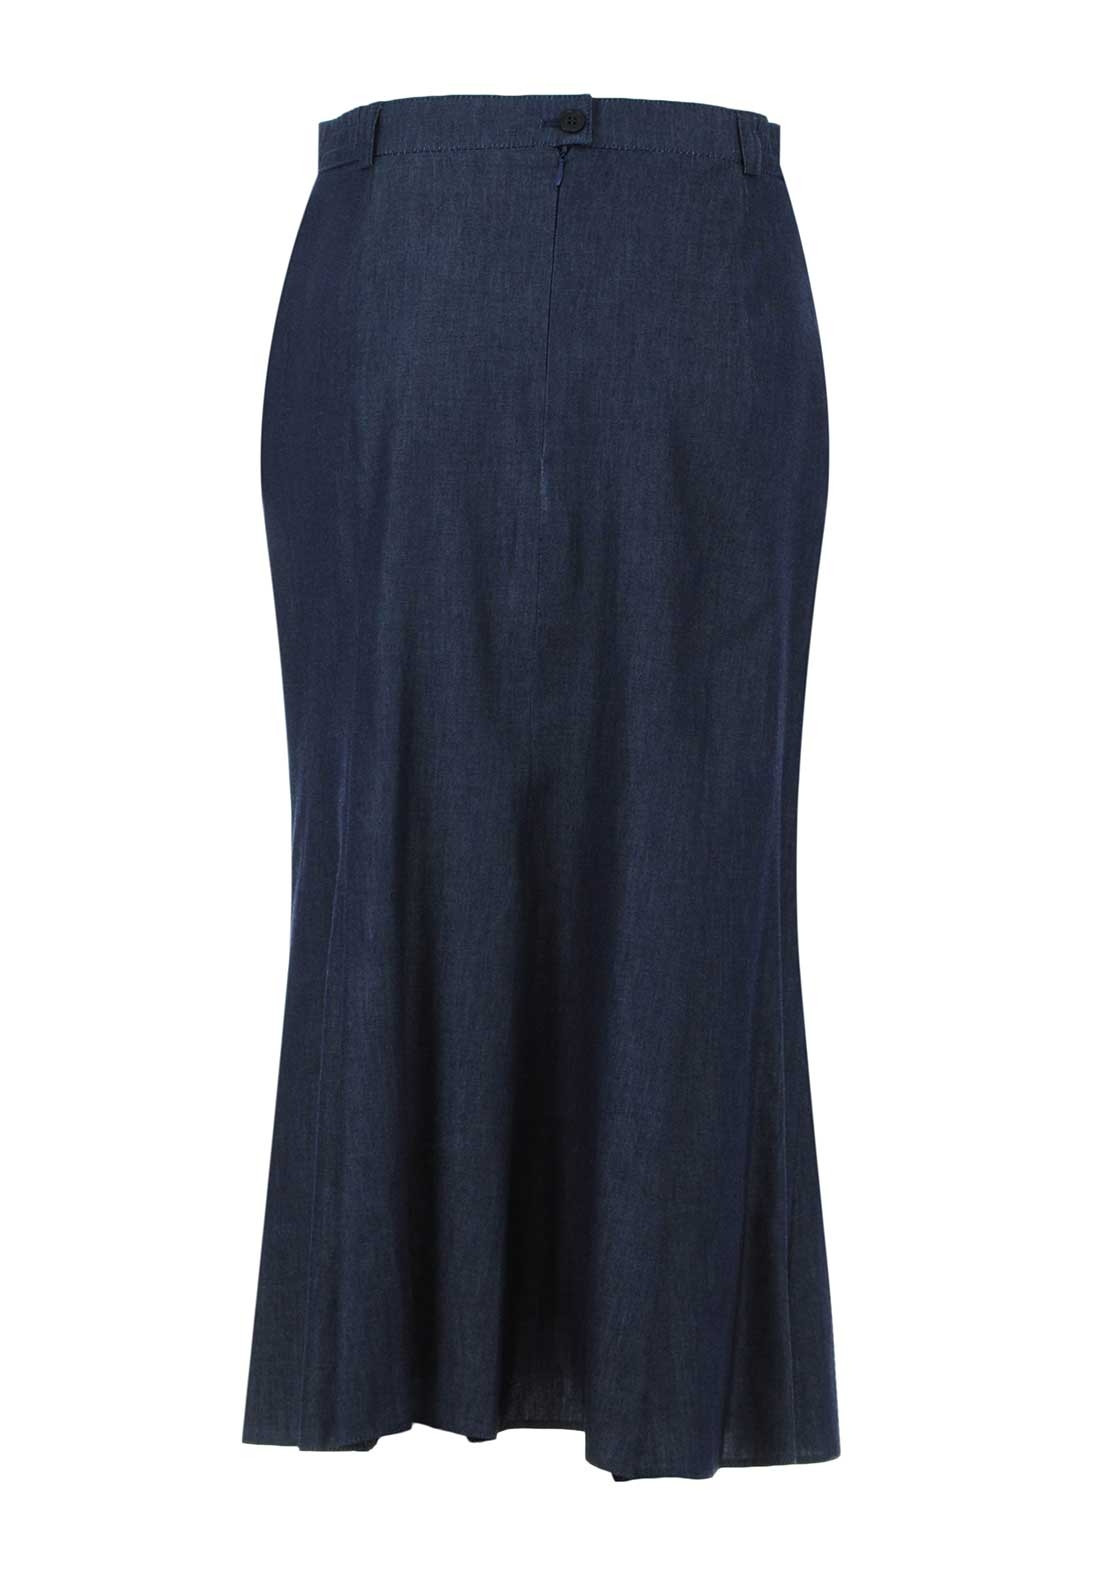 cdd2be7d20 Eugen Klein Denim Flared Midi Skirt, Navy. Be the first to review this  product